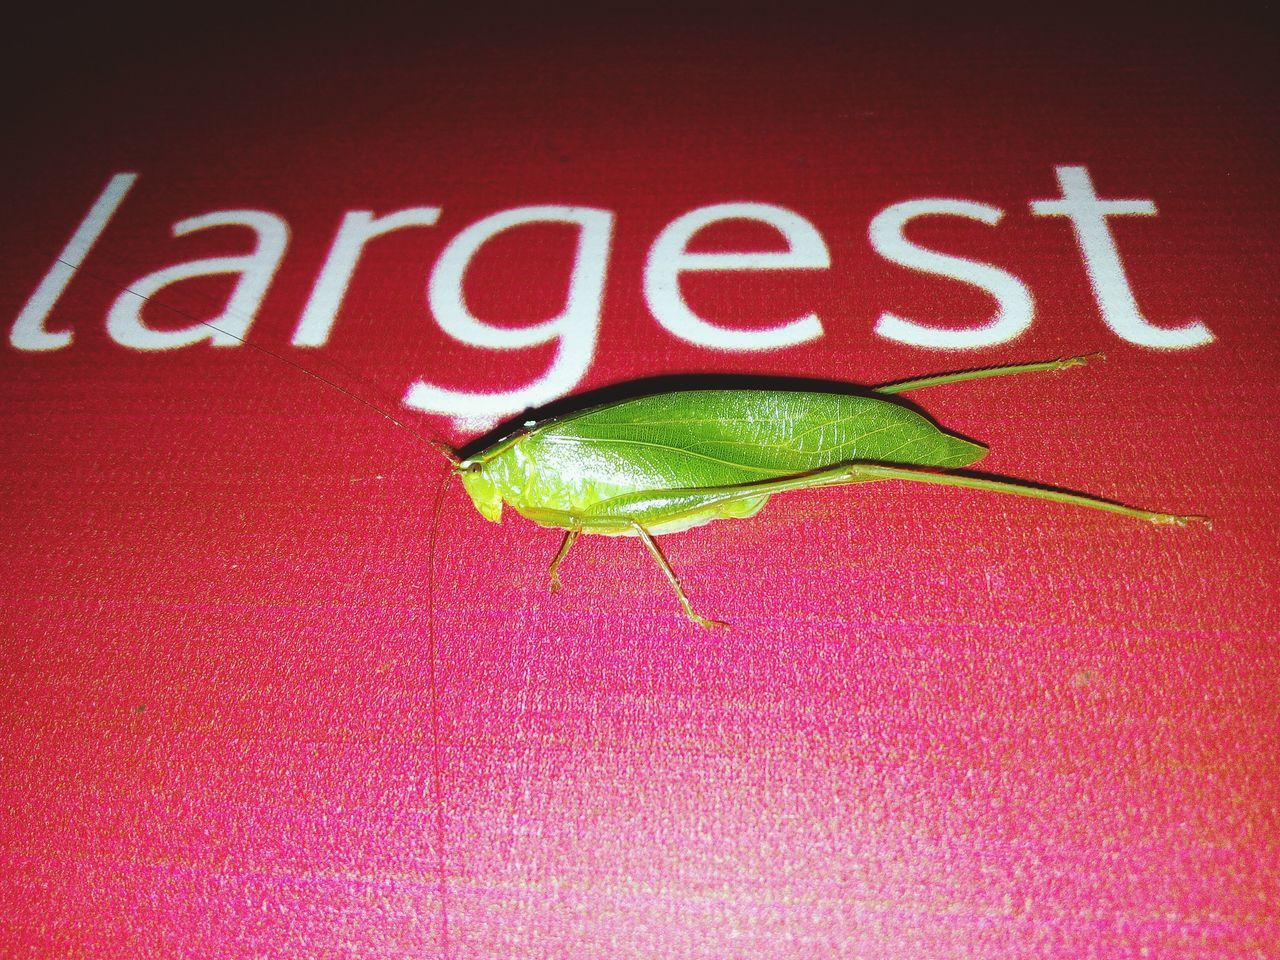 Before that I never Saw That Kind Of Insect In Larger Shape, Coincidentally Its Introduce Itself As LargestDeepGreenInsects.But I Know Thats Not Largest. Deepgreen Wild INSECT. Wildlife EyeEmNewHere